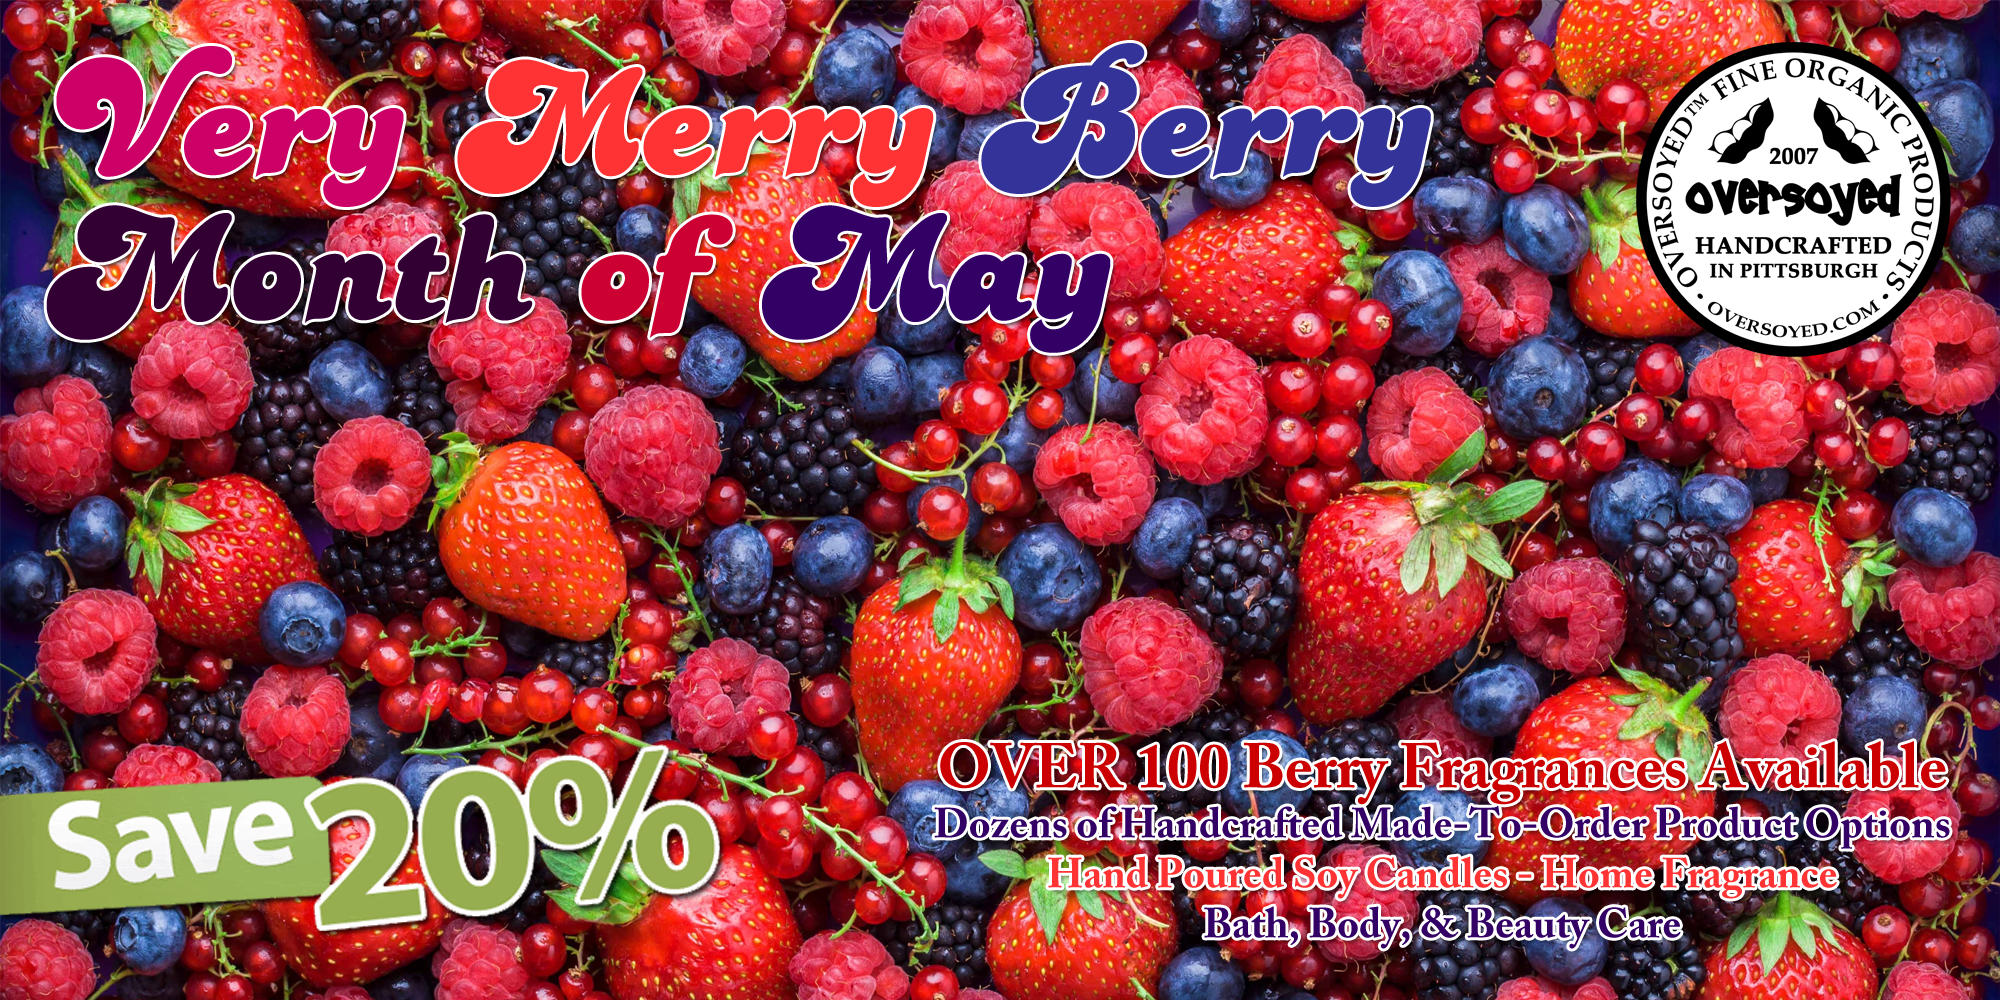 OverSoyed Fine Organic Products - Very Merry Berry Month of May